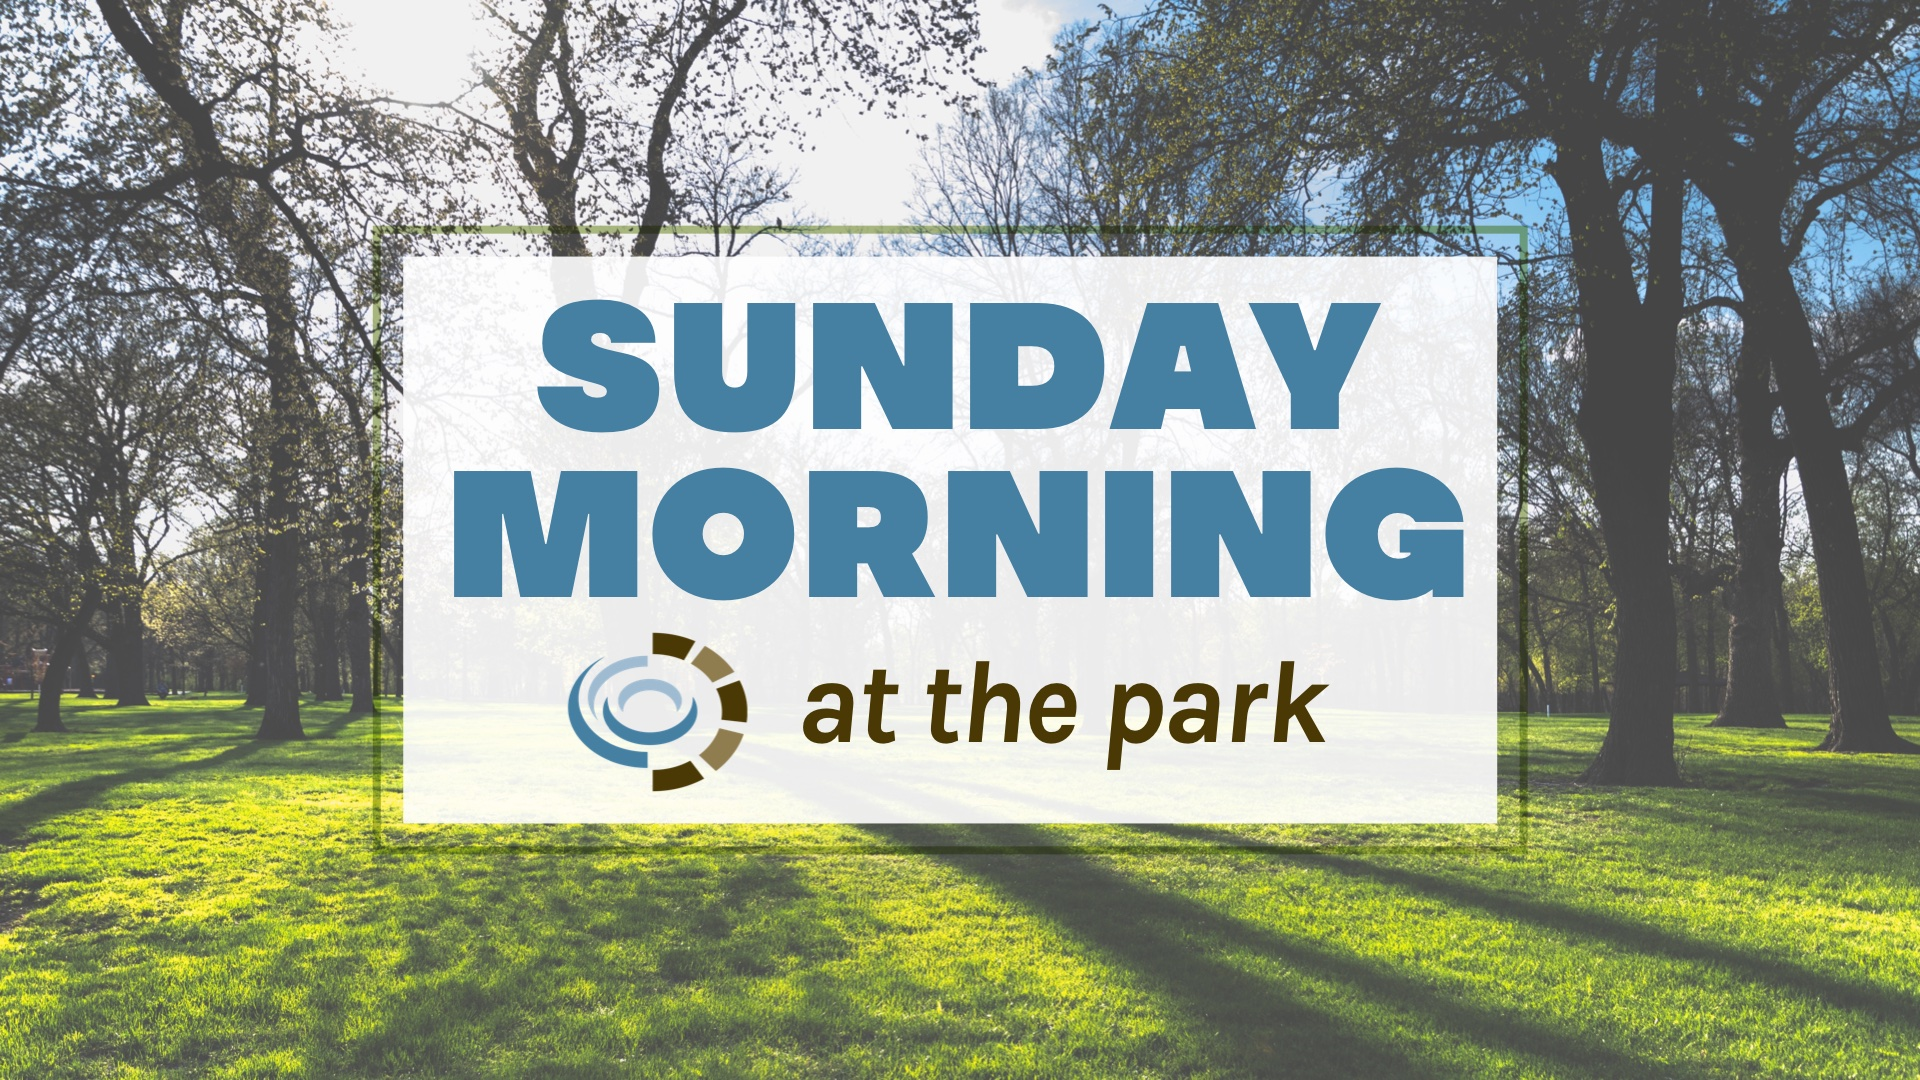 Sunday Morning at the Park graphic - GS size image